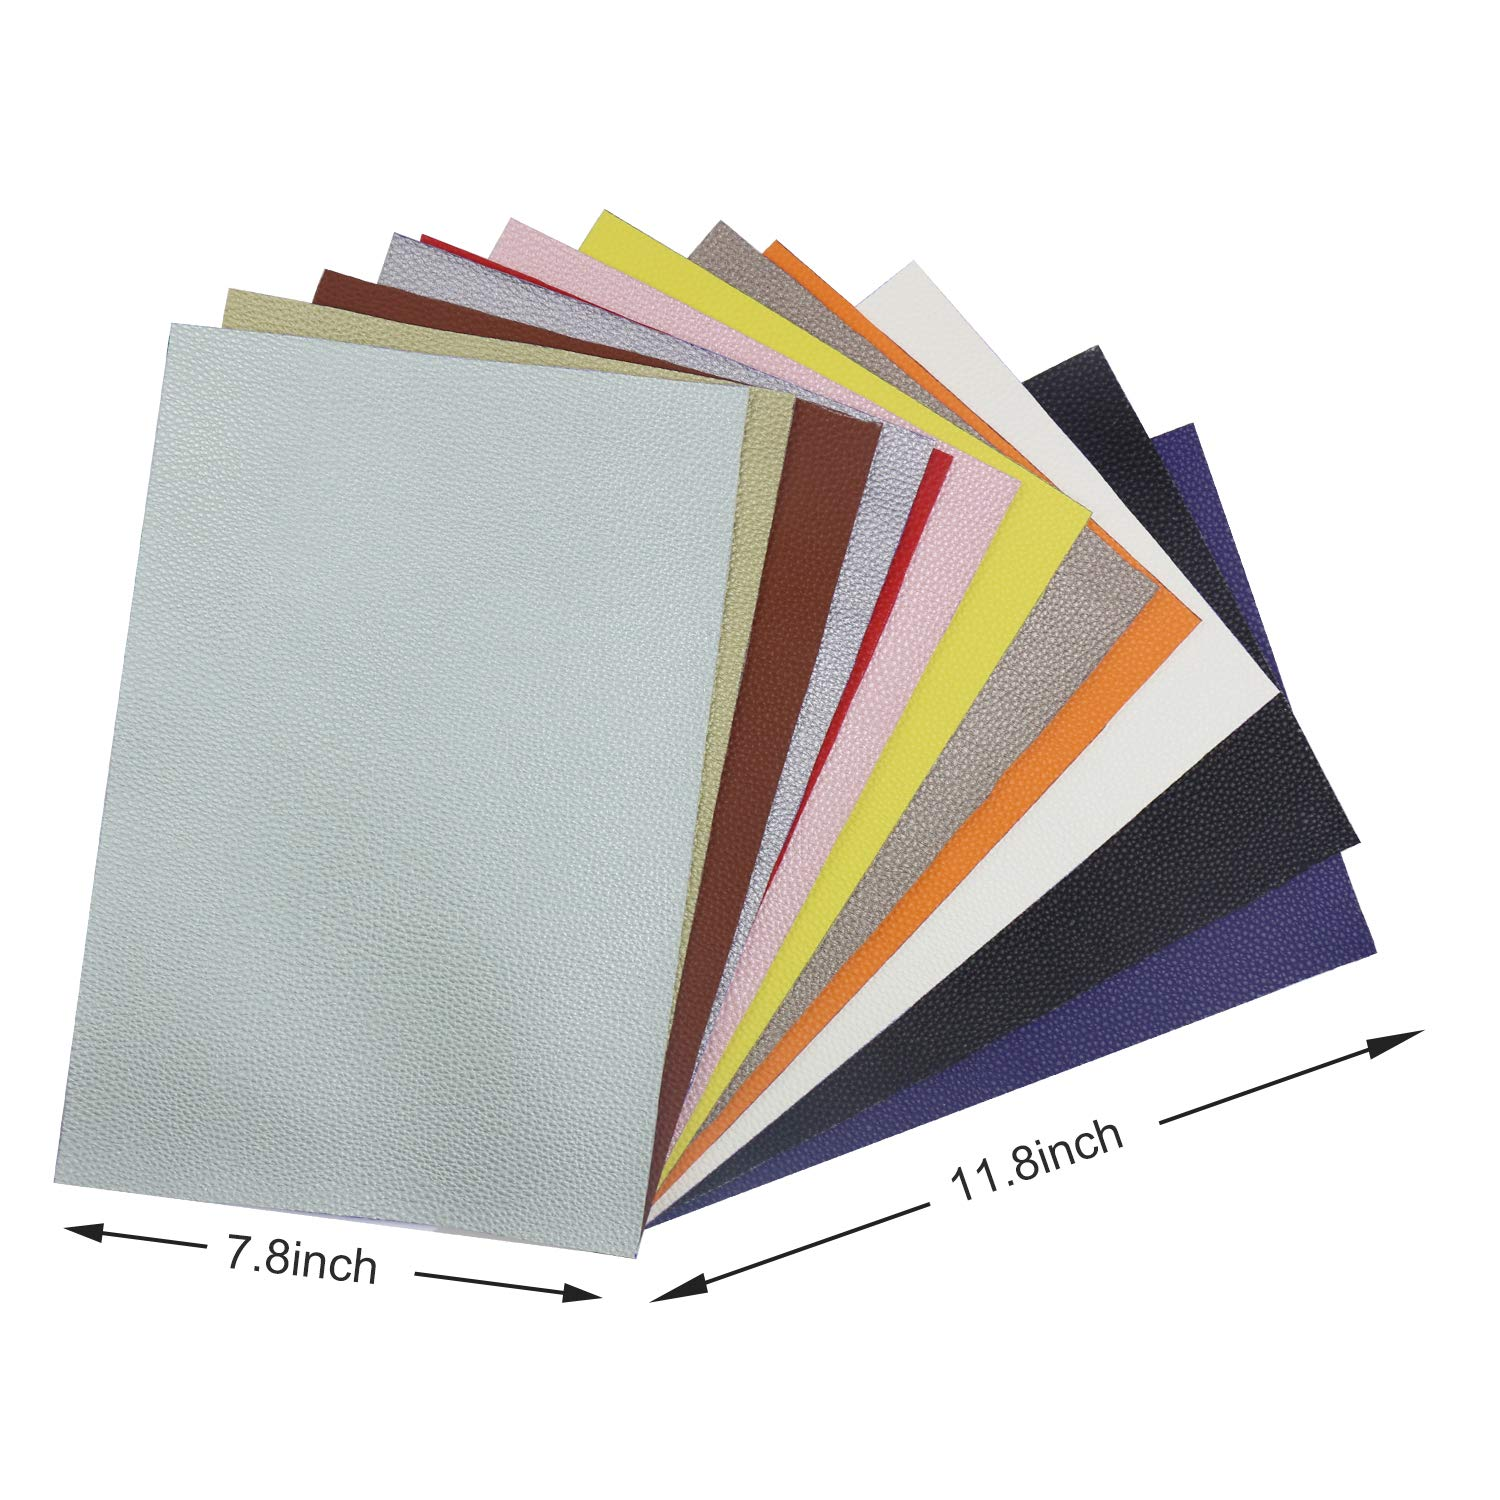 Litchi Faux Leather Sheets, SIMPZIA NO Odor 11.8'' x 7.8'' PU Synthetic Leather Cotton Backed, 1.2mm Easy Cut Fabric Leather with 12PCS Pearlized and Solid Colors for Earrings, DIY Craft Projects by SIMPZIA (Image #7)